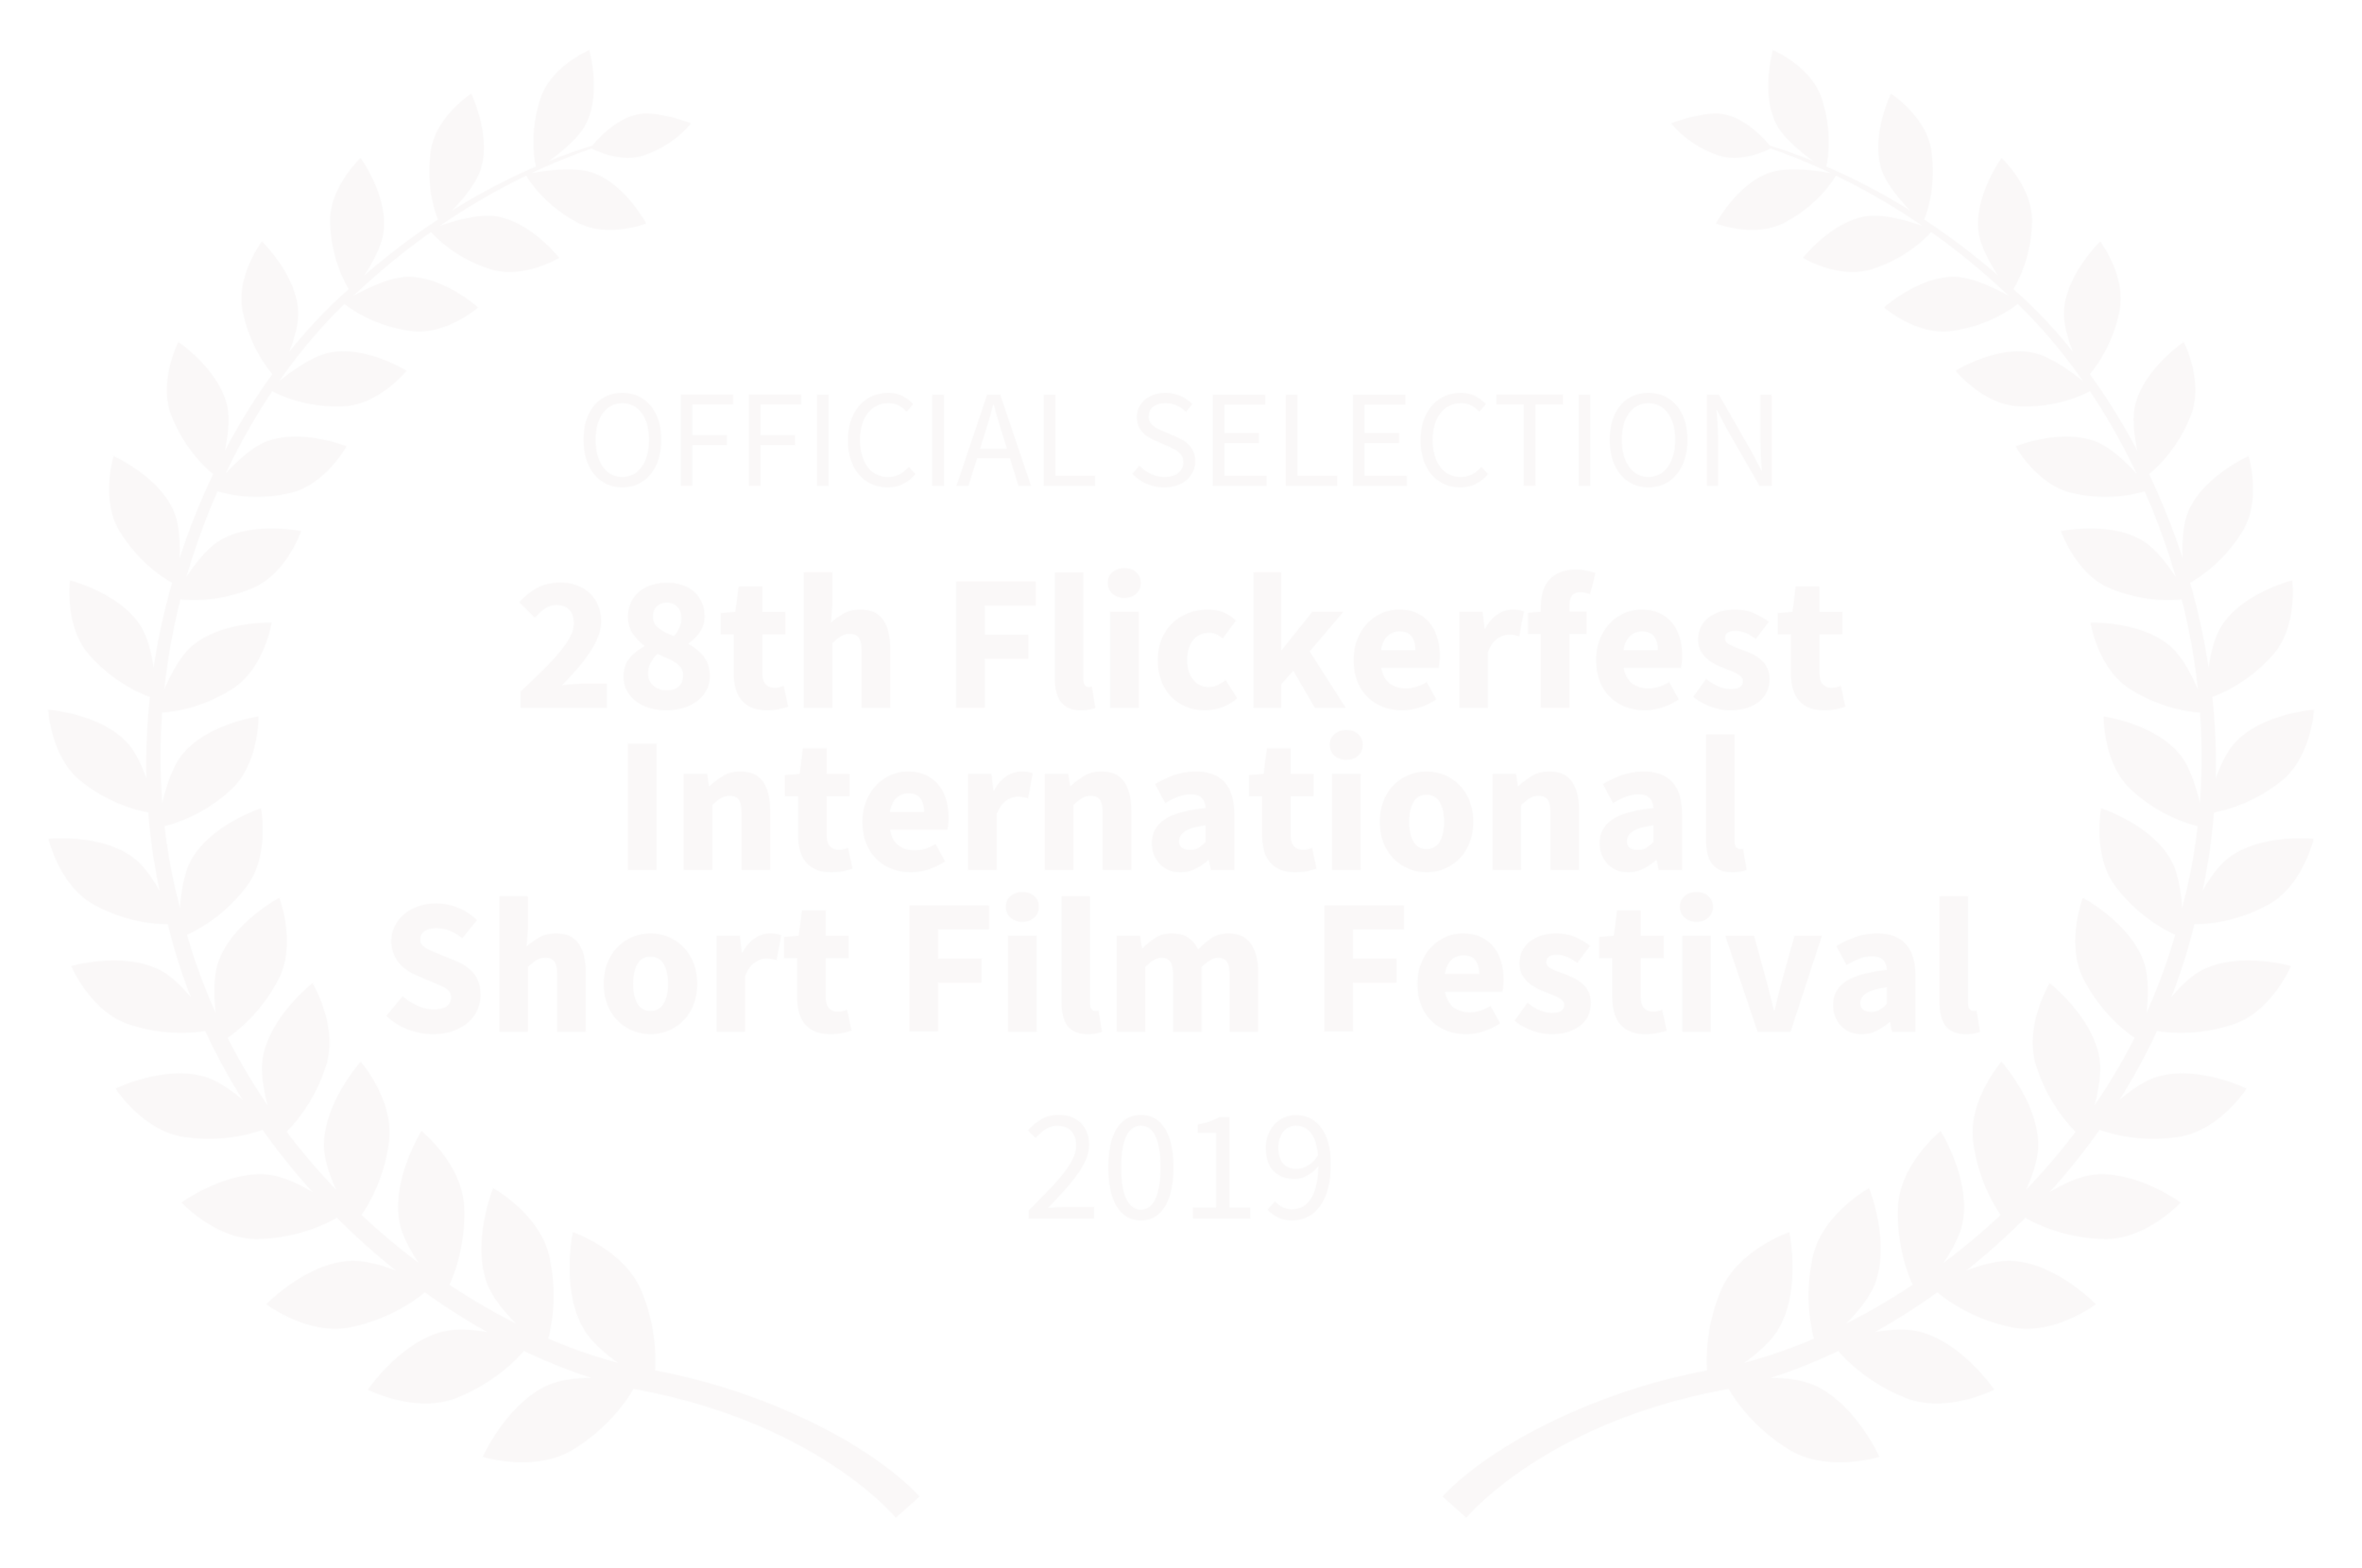 FLICKERFEST2019_OFFICIAL SELECTION LAURELS_WHITE.png